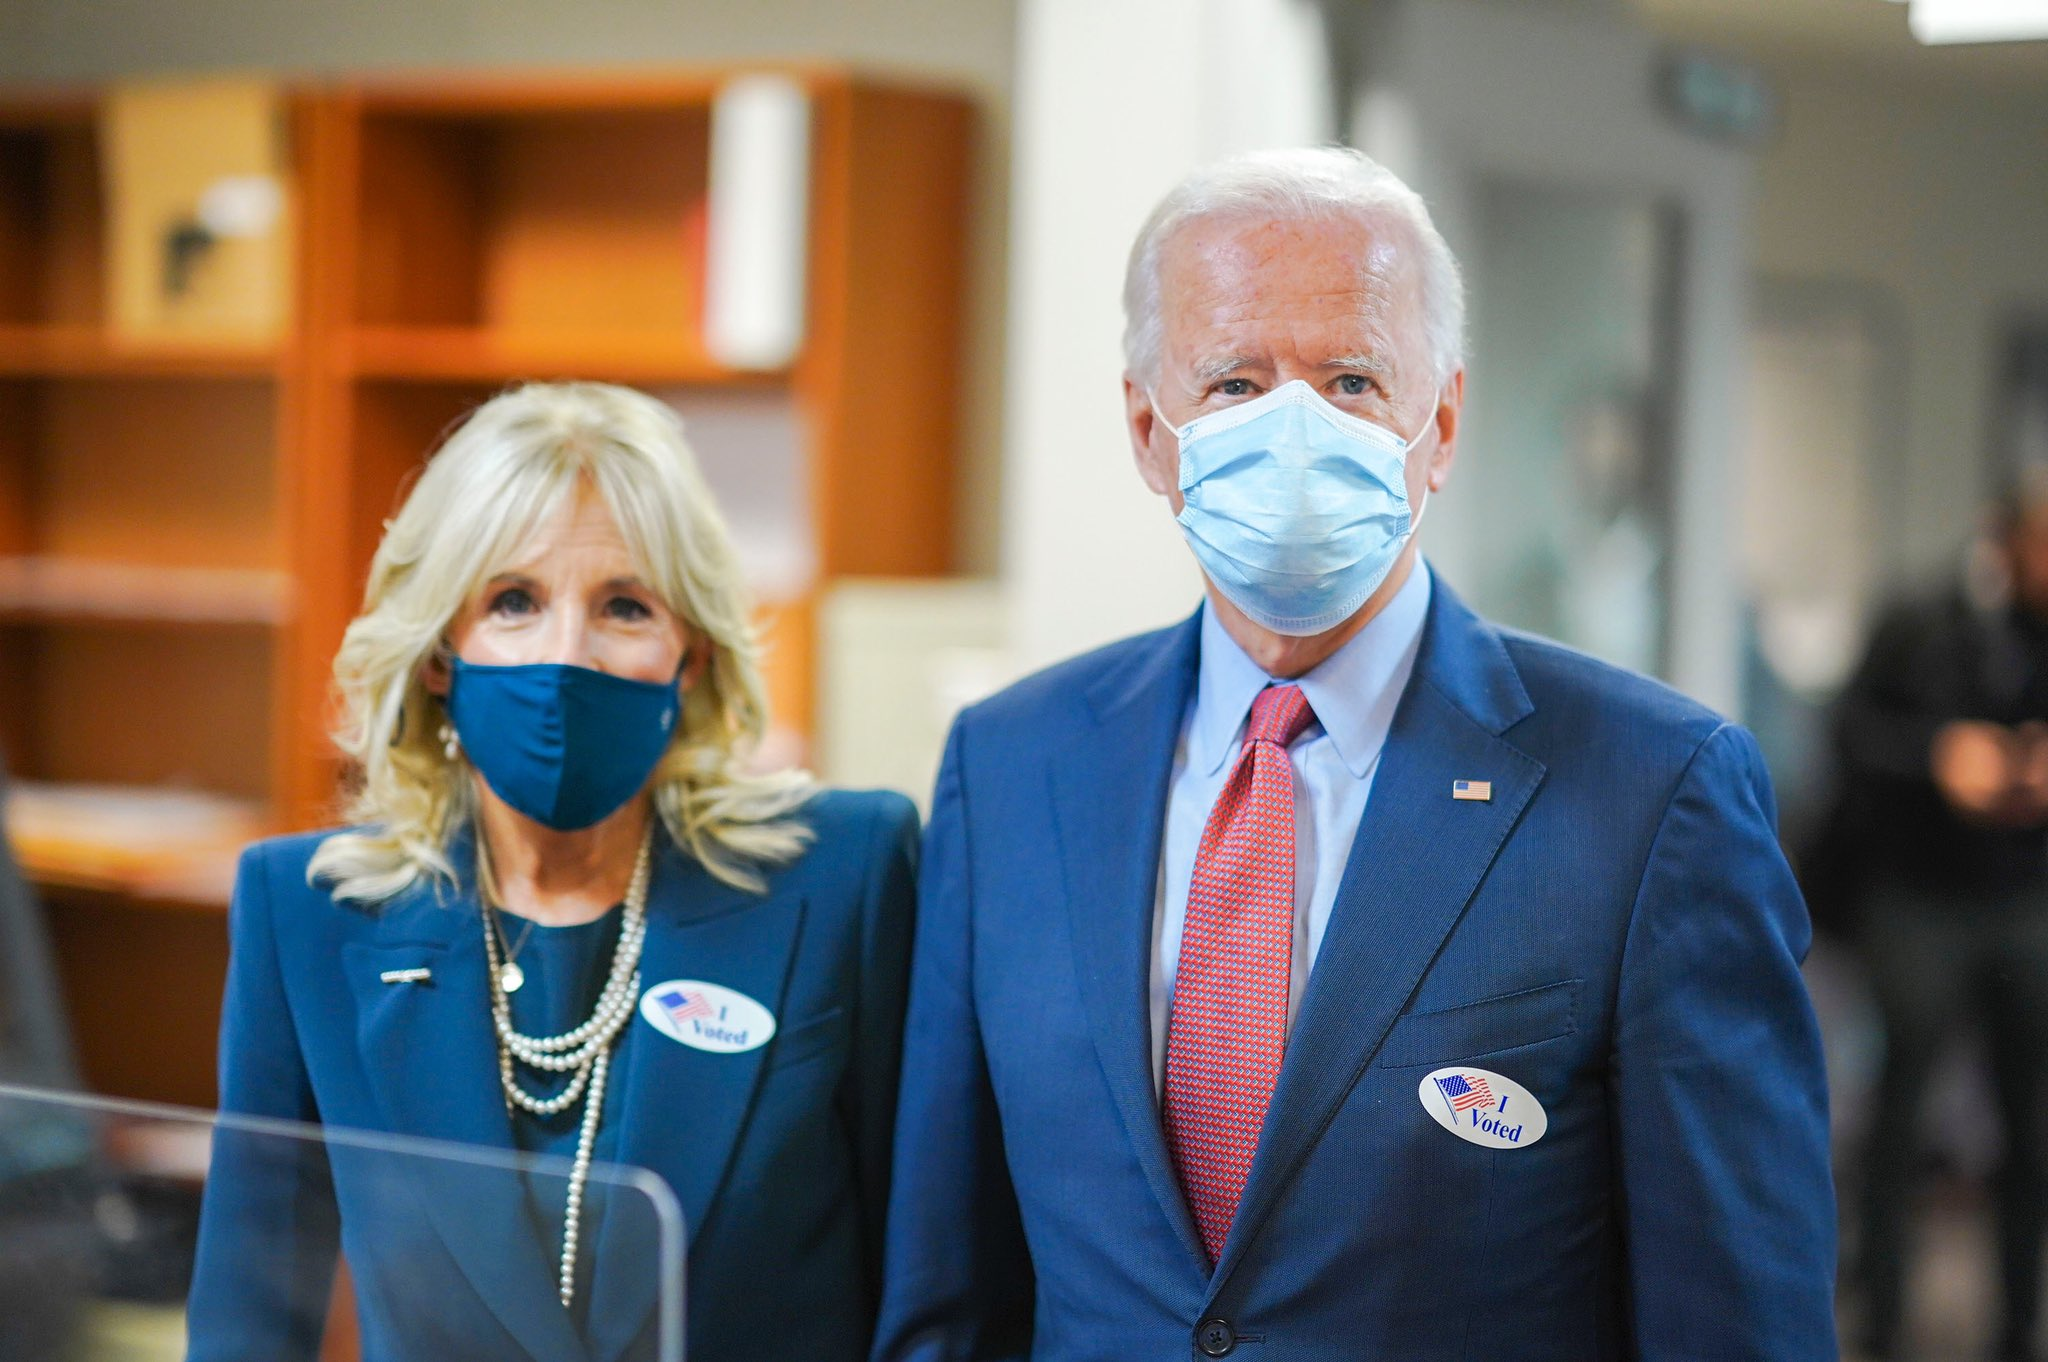 Jill Biden will now be in the White House Once Again as a First Lady of USA